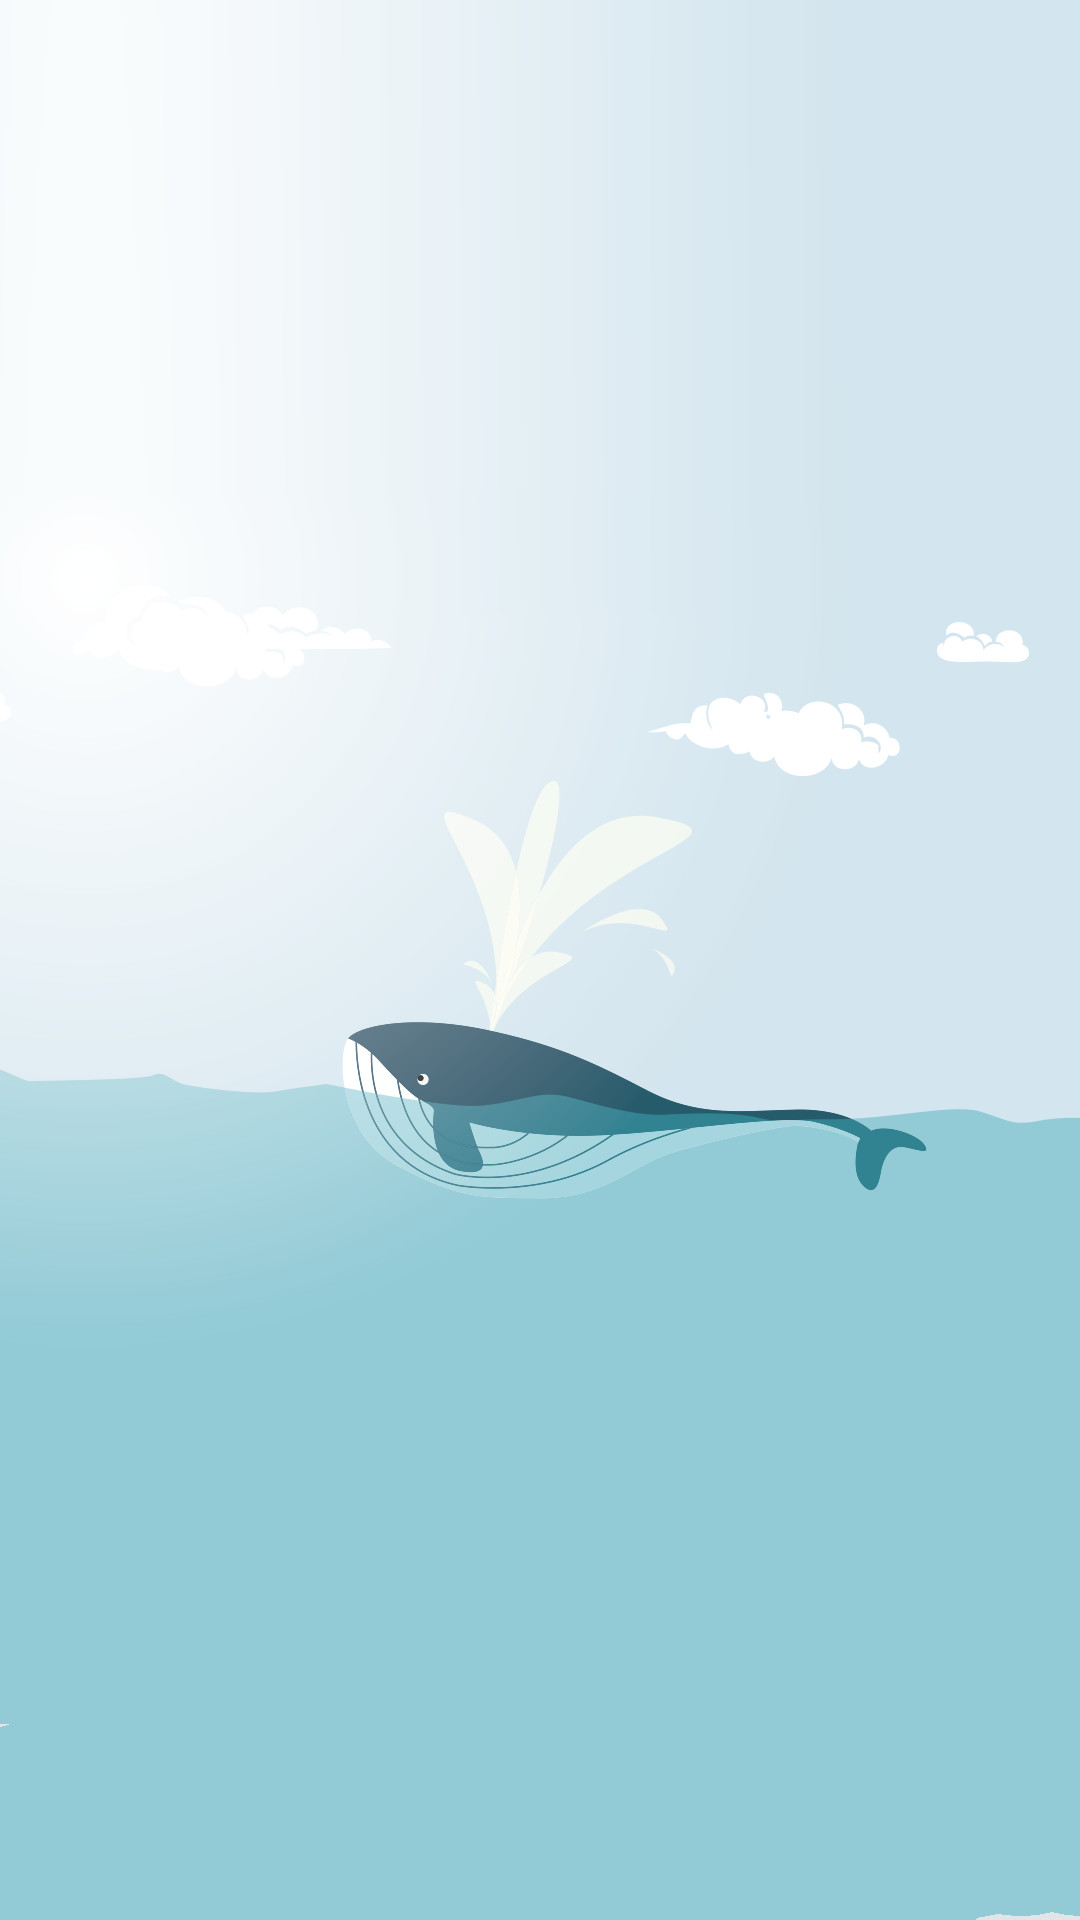 1080x1920 Minimal iPhone wallpapers ❤ Happy whale More